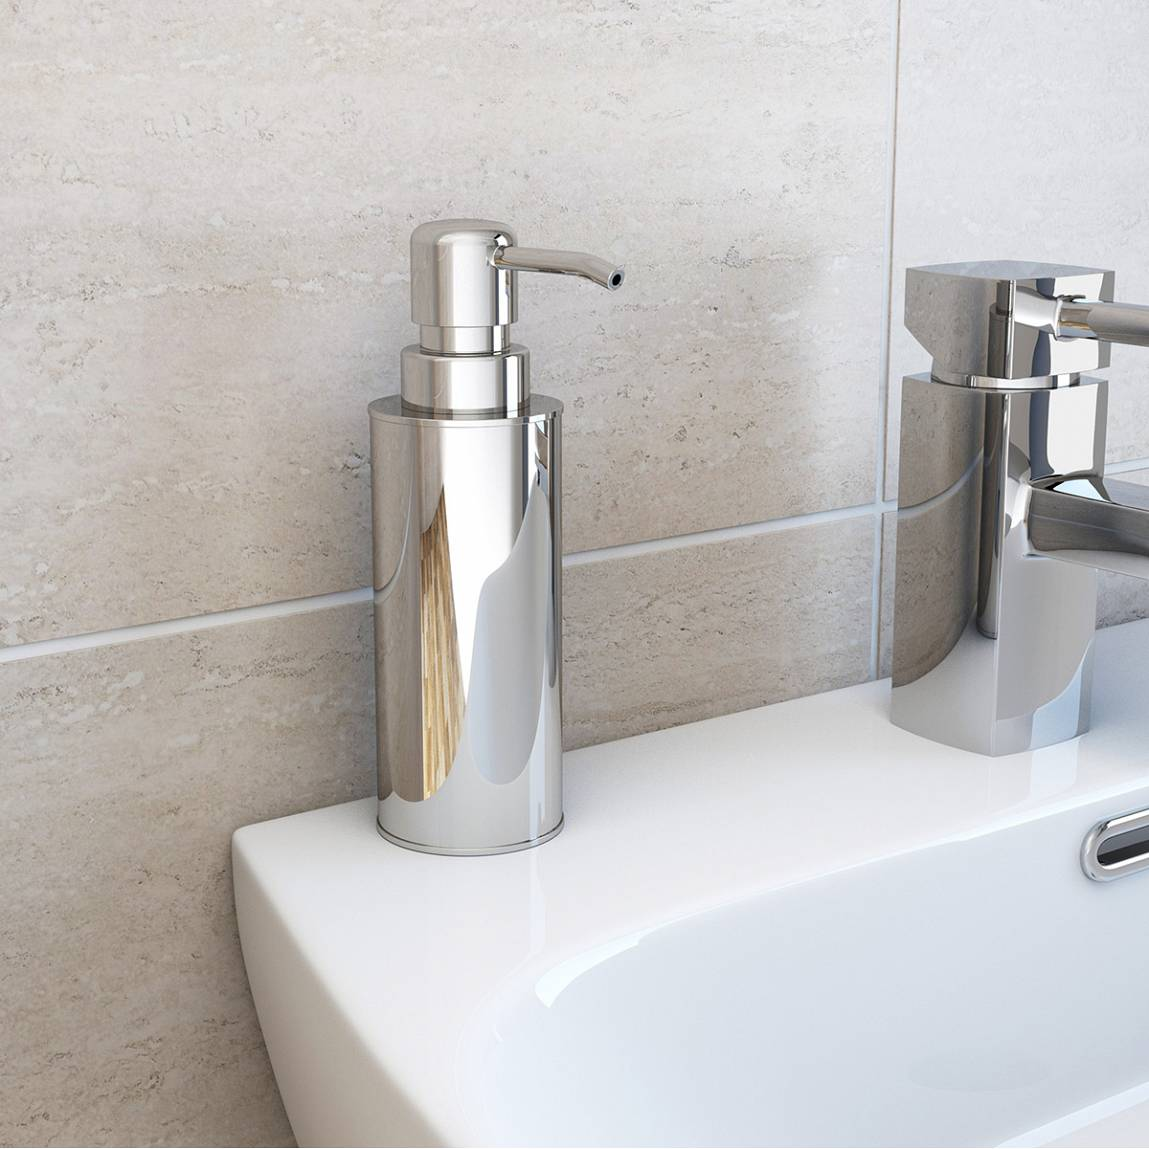 Metal Soap Dispenser Pump Options Freestanding Slim Stainless Steel Soap Pump